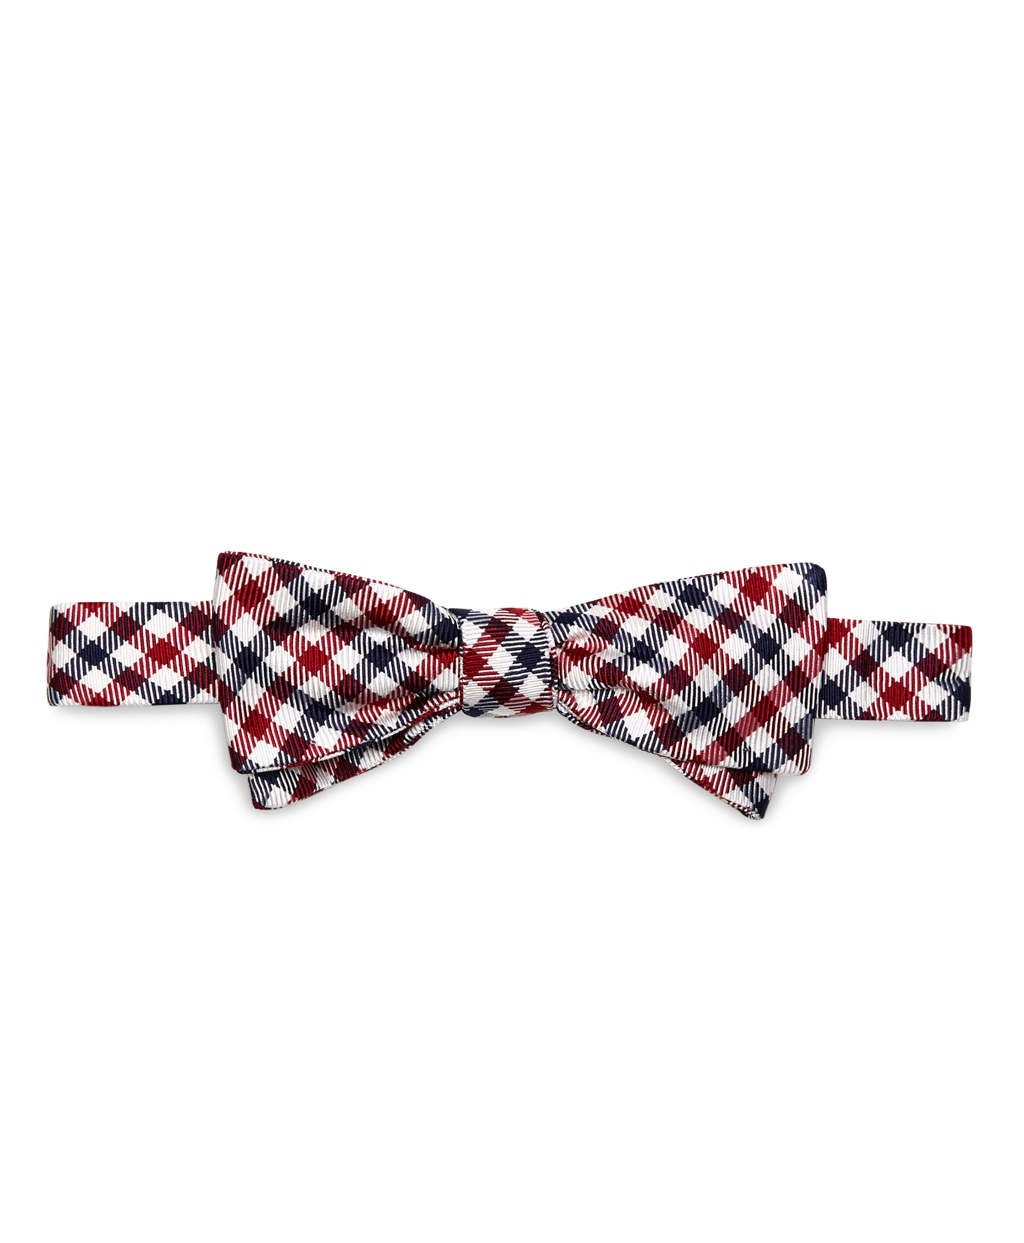 Lyst - Brooks Brothers Gingham Bow Tie in Blue for Men